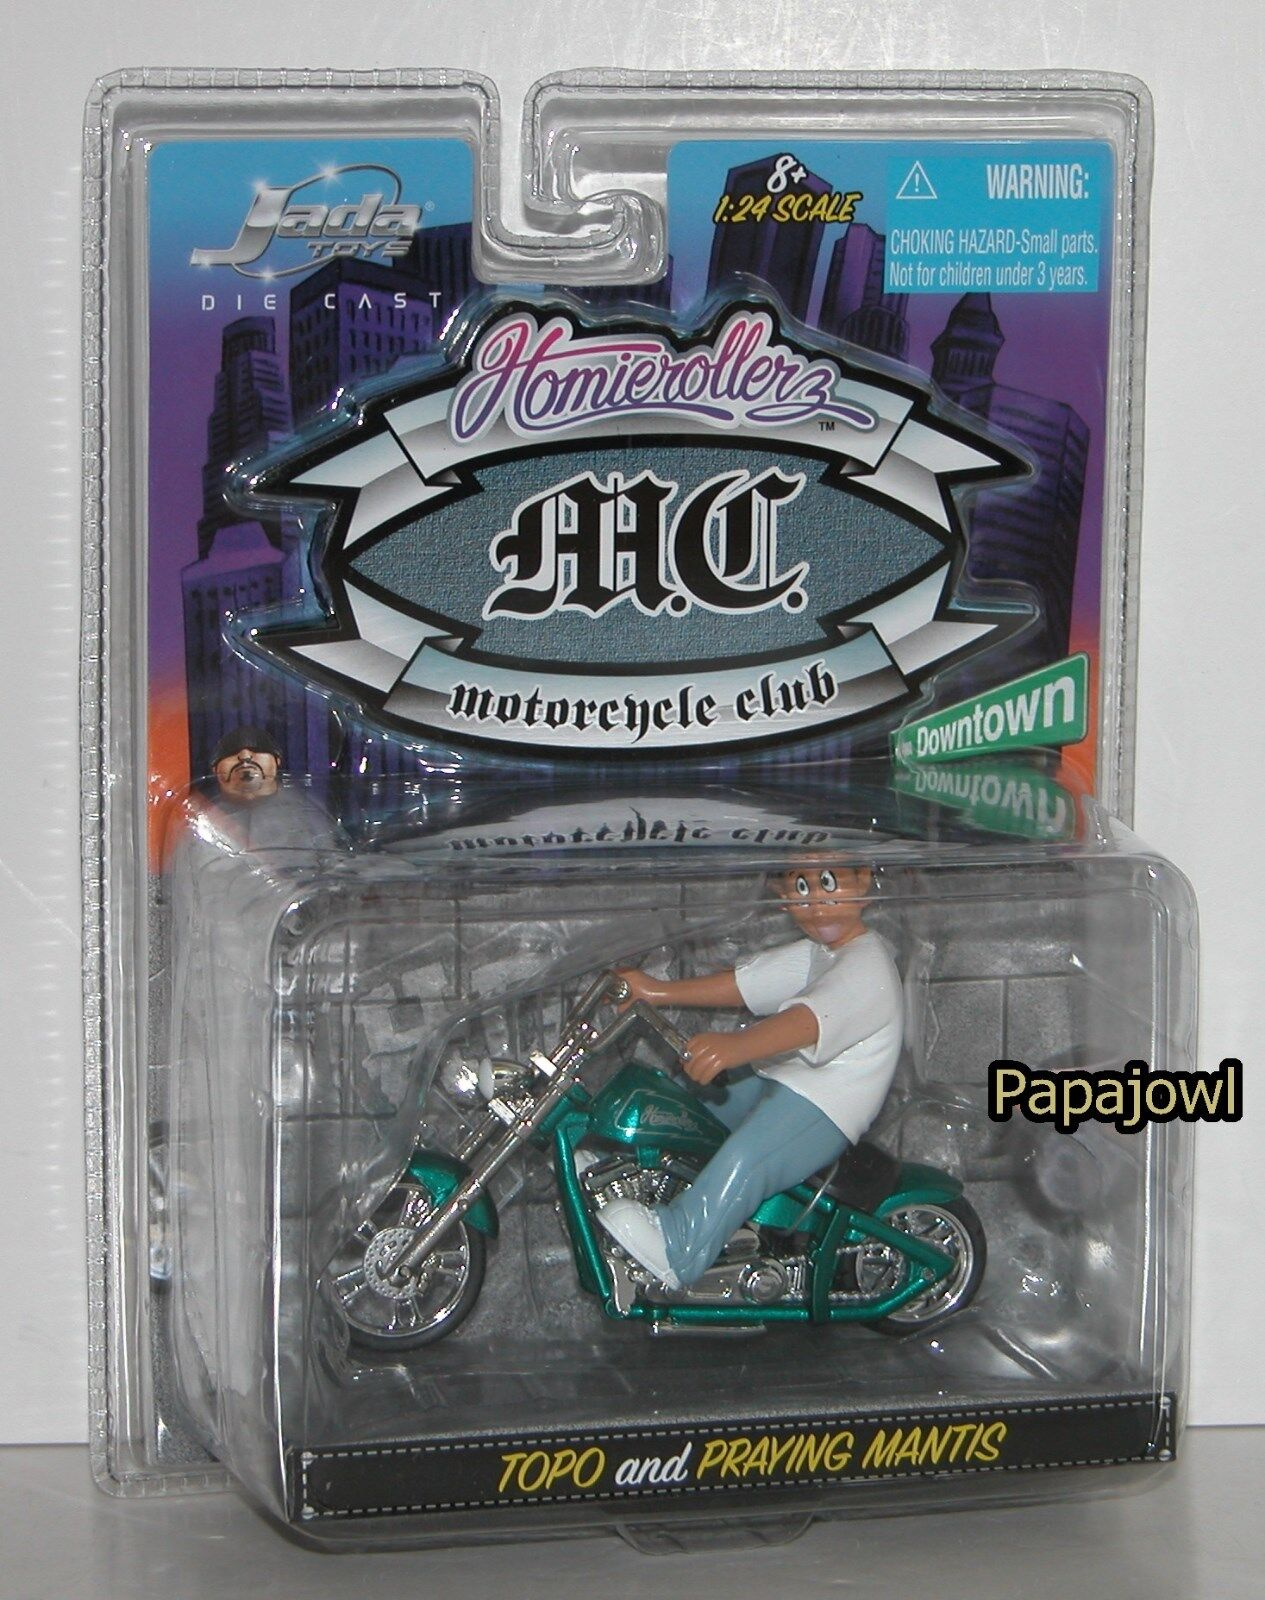 2005 Jada Homie Rollerz MC Motorcycle Club TOPO and Praying Mantis 1/24